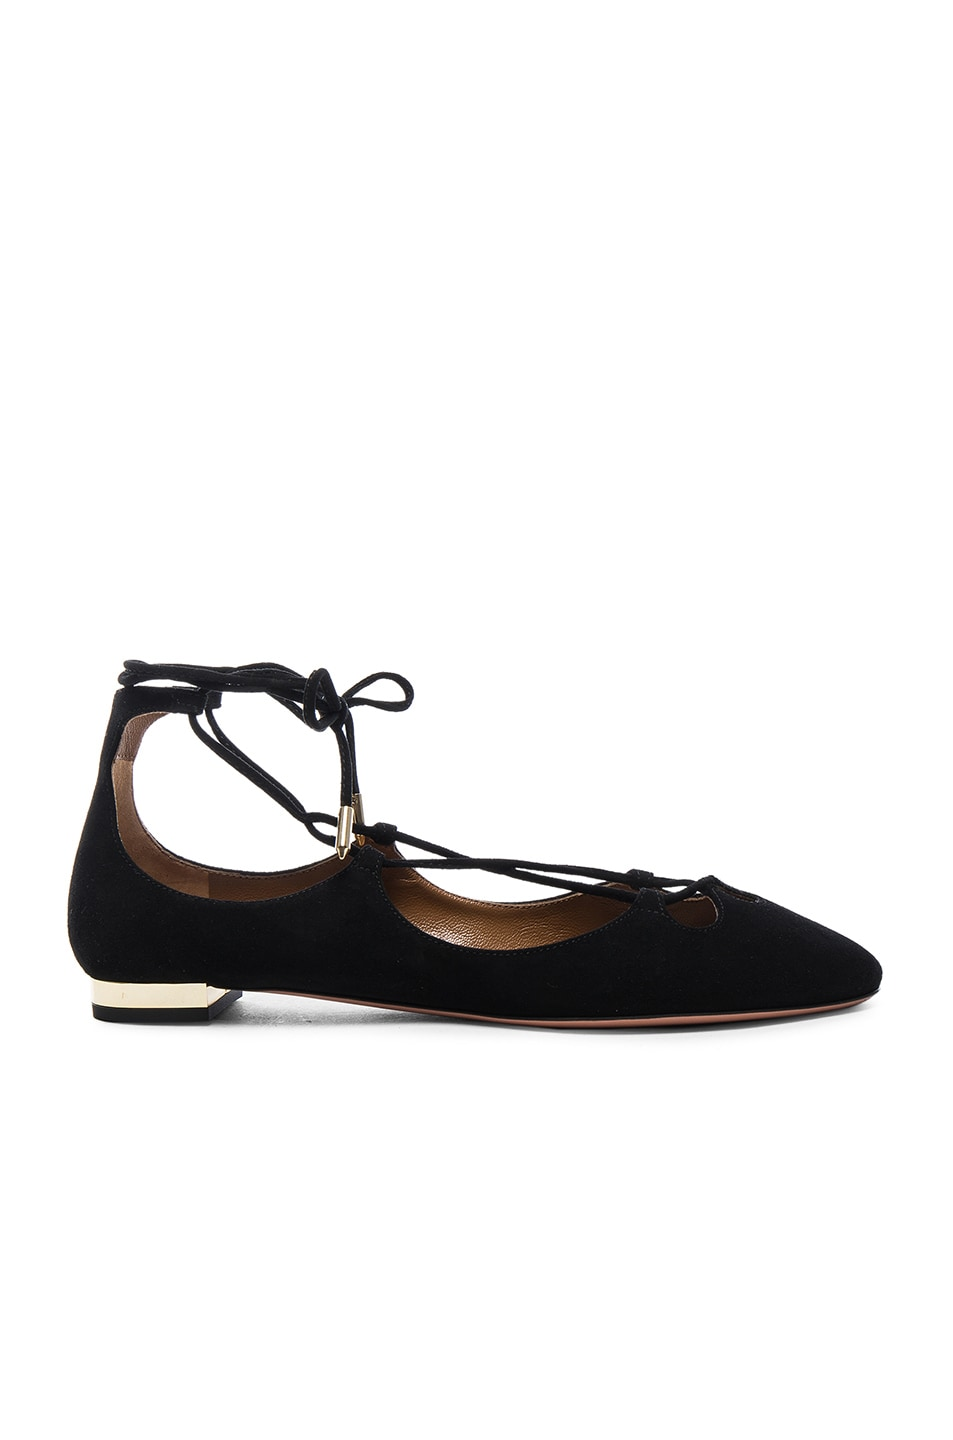 Image 1 of Aquazzura Dancer Suede Flats in Black